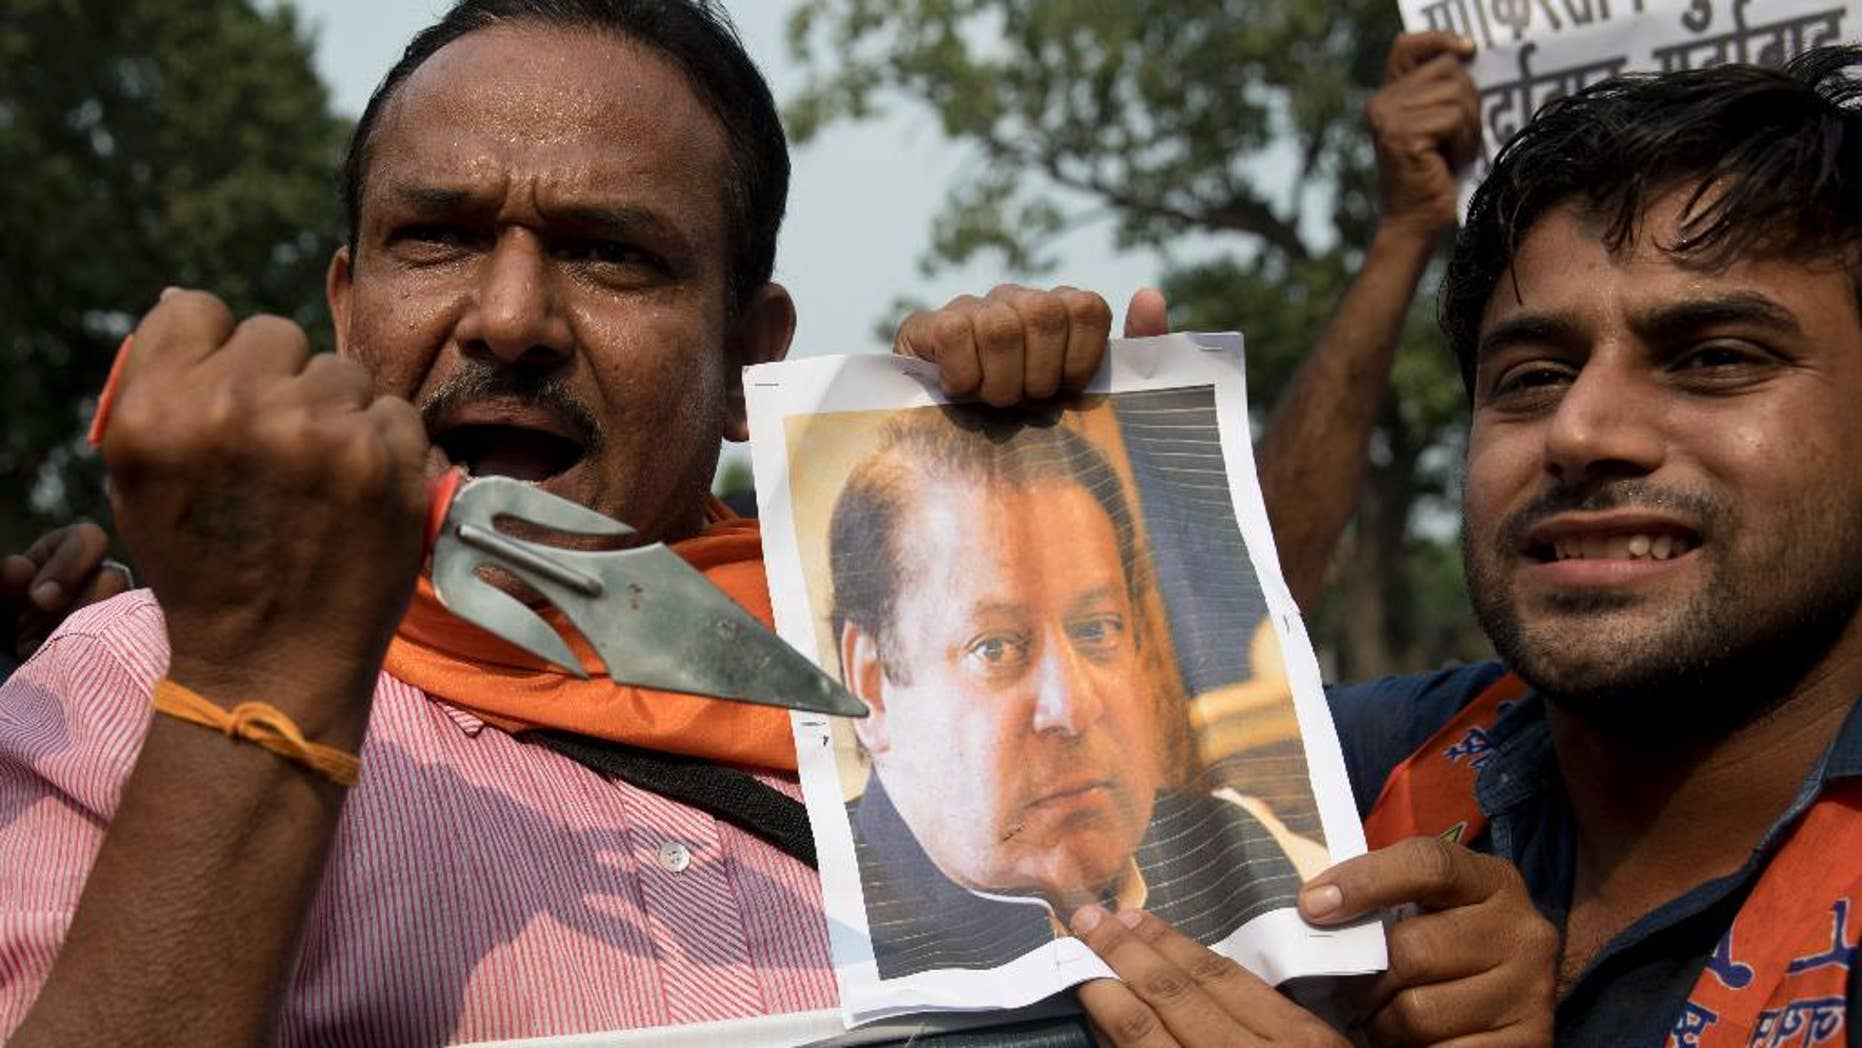 An activist of Hindu nationalist Shiv Sena party points a trident to a photograph of Pakistan Prime Minister Nawaz Sharif as they protest against Sunday's attack at an Indian army base in Kashmir, New Delhi, India, Monday, Sept. 19, 2016. India accuses Pakistan of training the militants in its territory, then helping them to infiltrate into the Indian side. Islamabad denies the charge, saying it only gives political and diplomatic support to the rebels. (AP Photo/Tsering Topgyal)